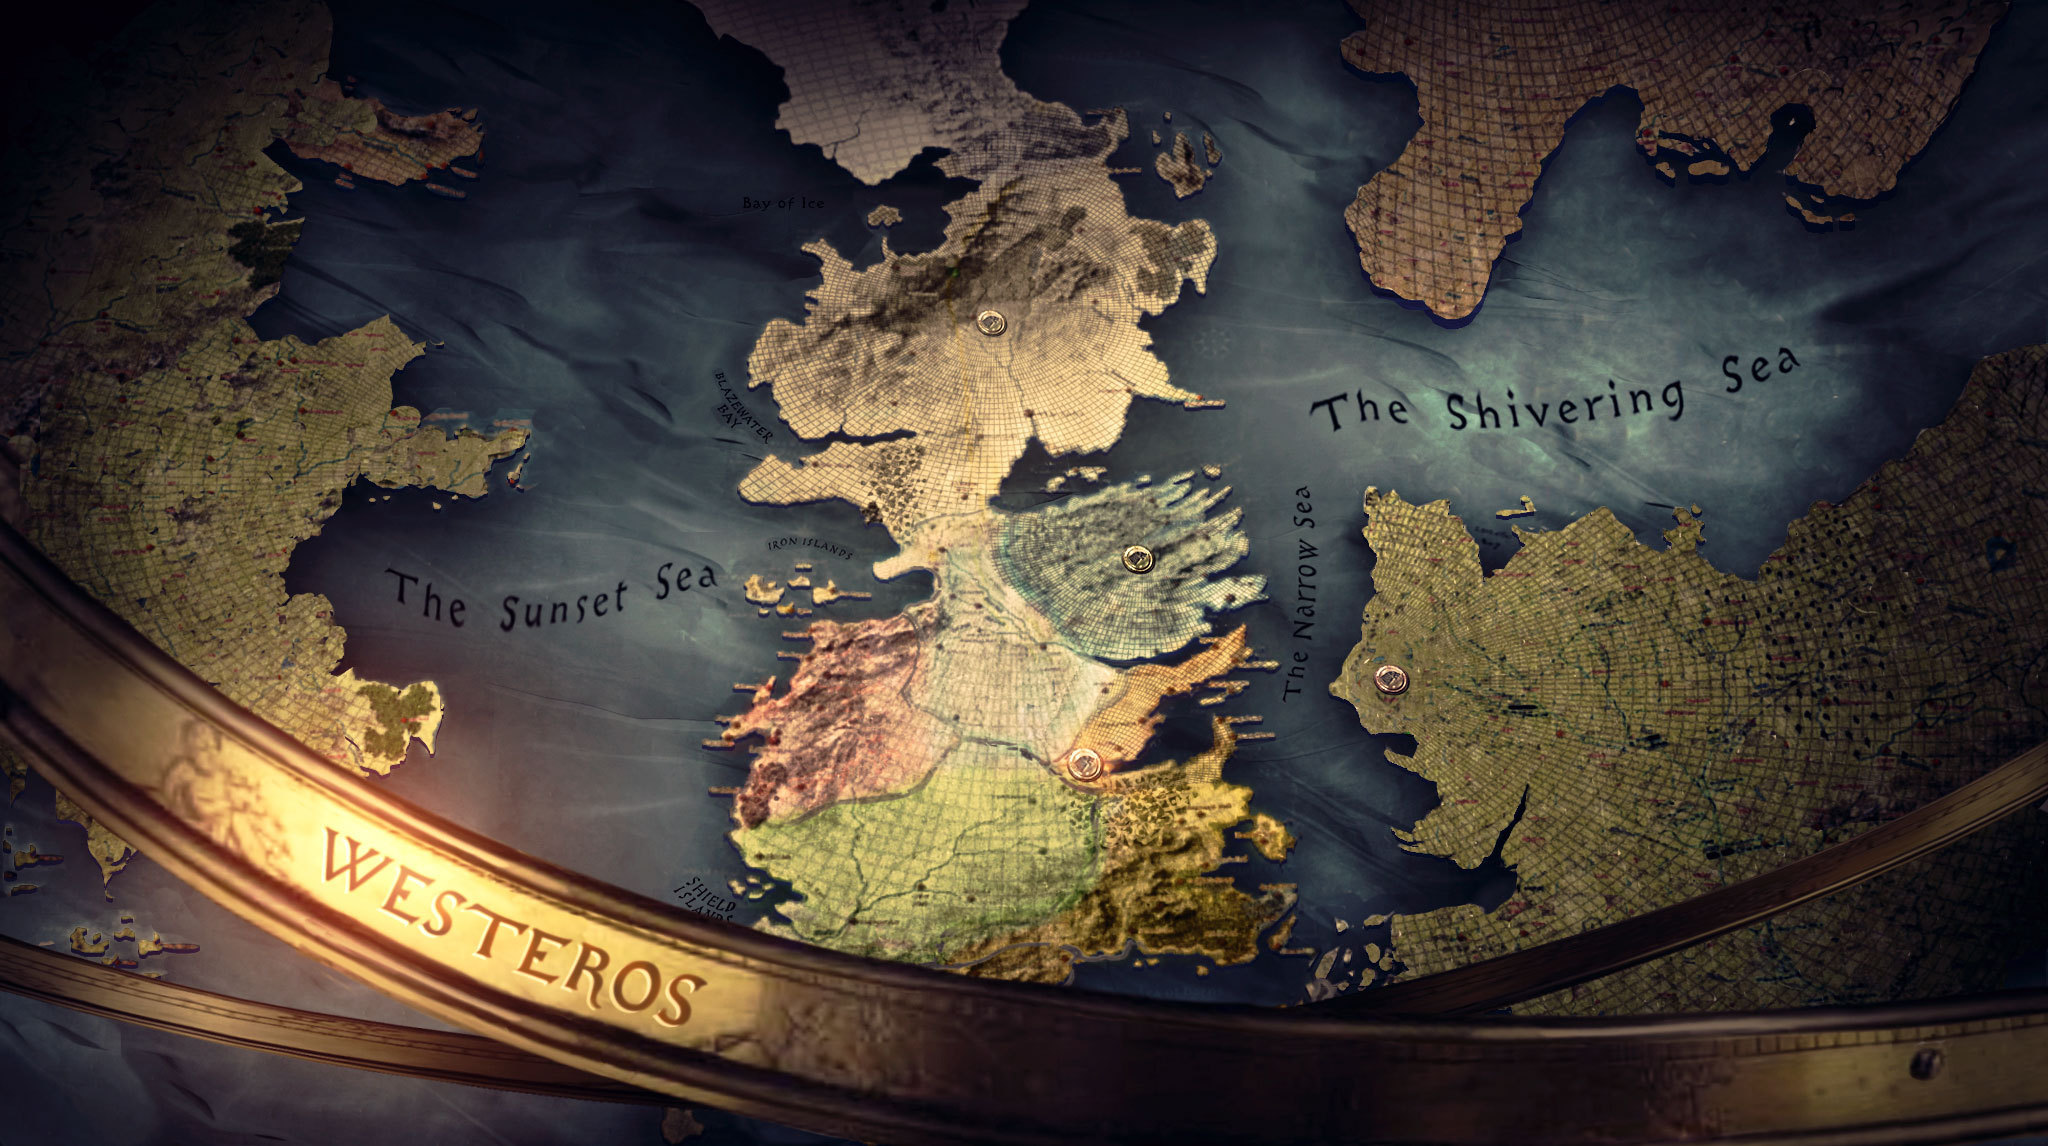 Game Of Thrones Images World Map Concept Art Hd Wallpaper And